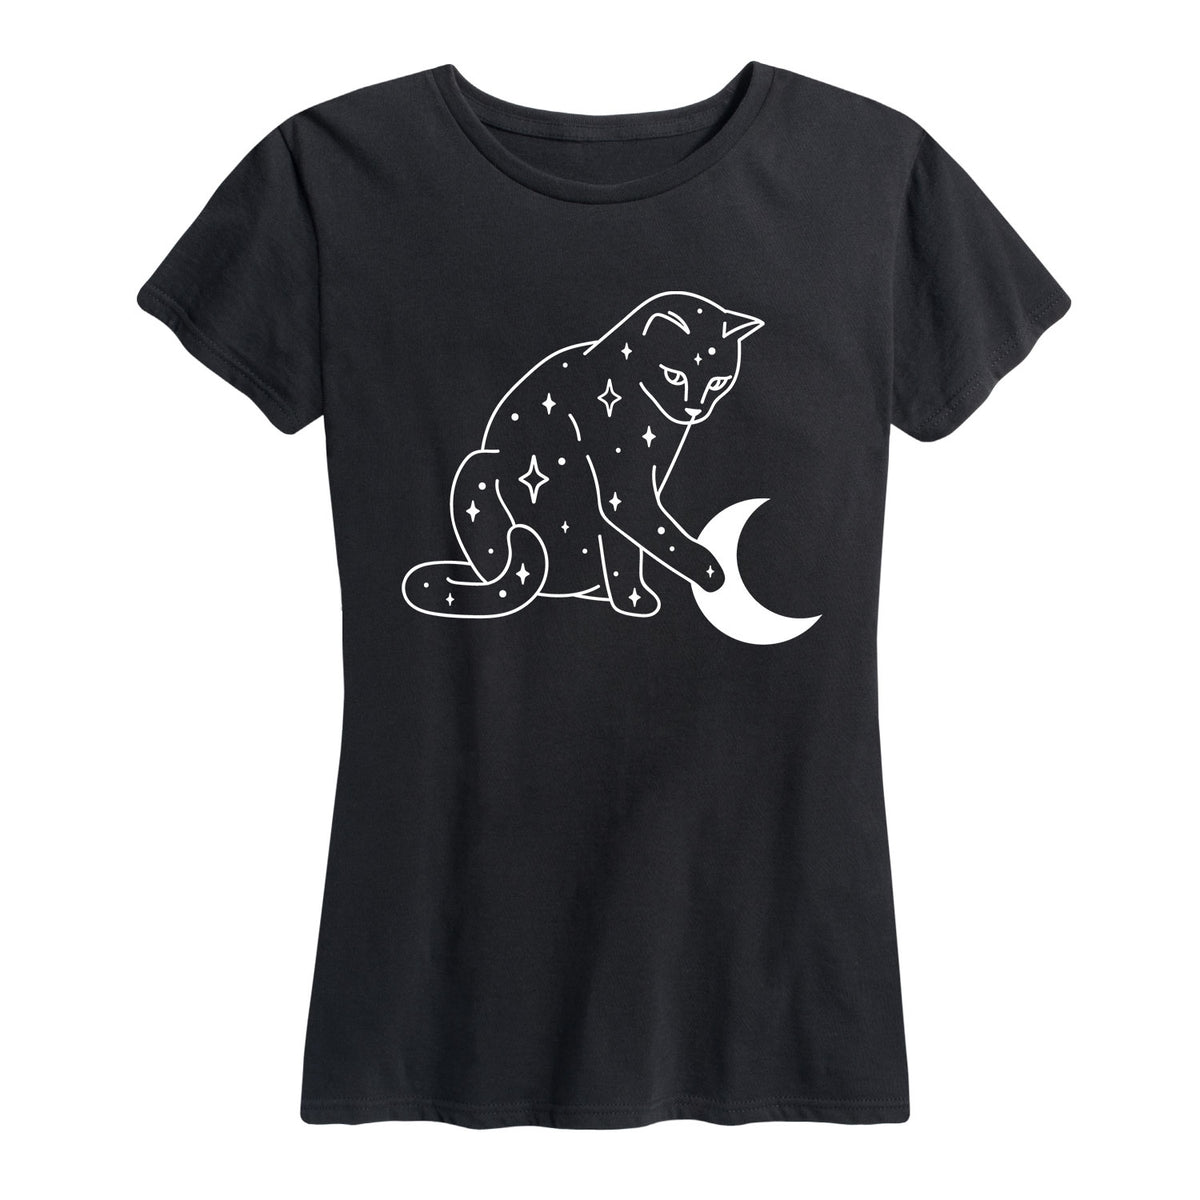 Starry Cat-Womens - Women's Short Sleeve T-Shirt